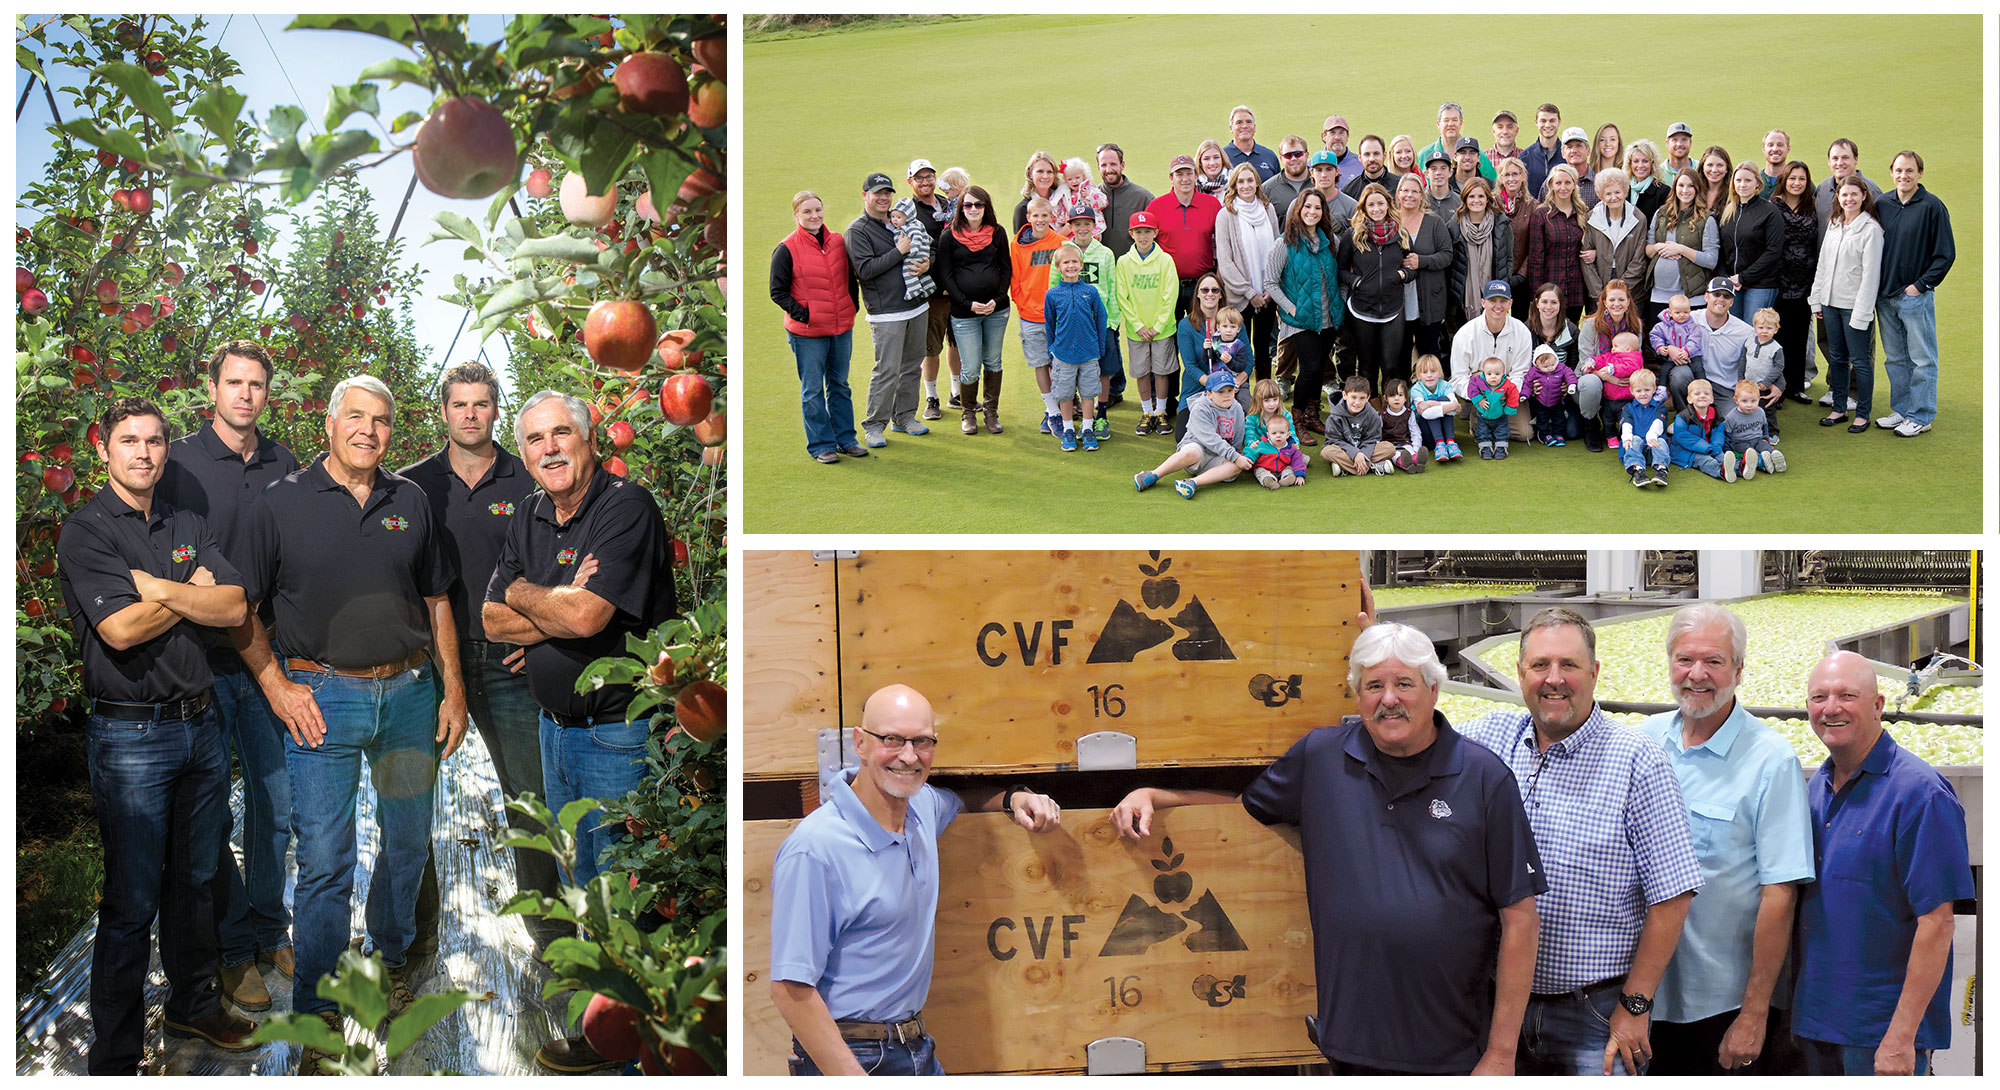 Clockwise from left: The Borton Fruit team; The Gebbers family; The Columbia Valley Fruit team